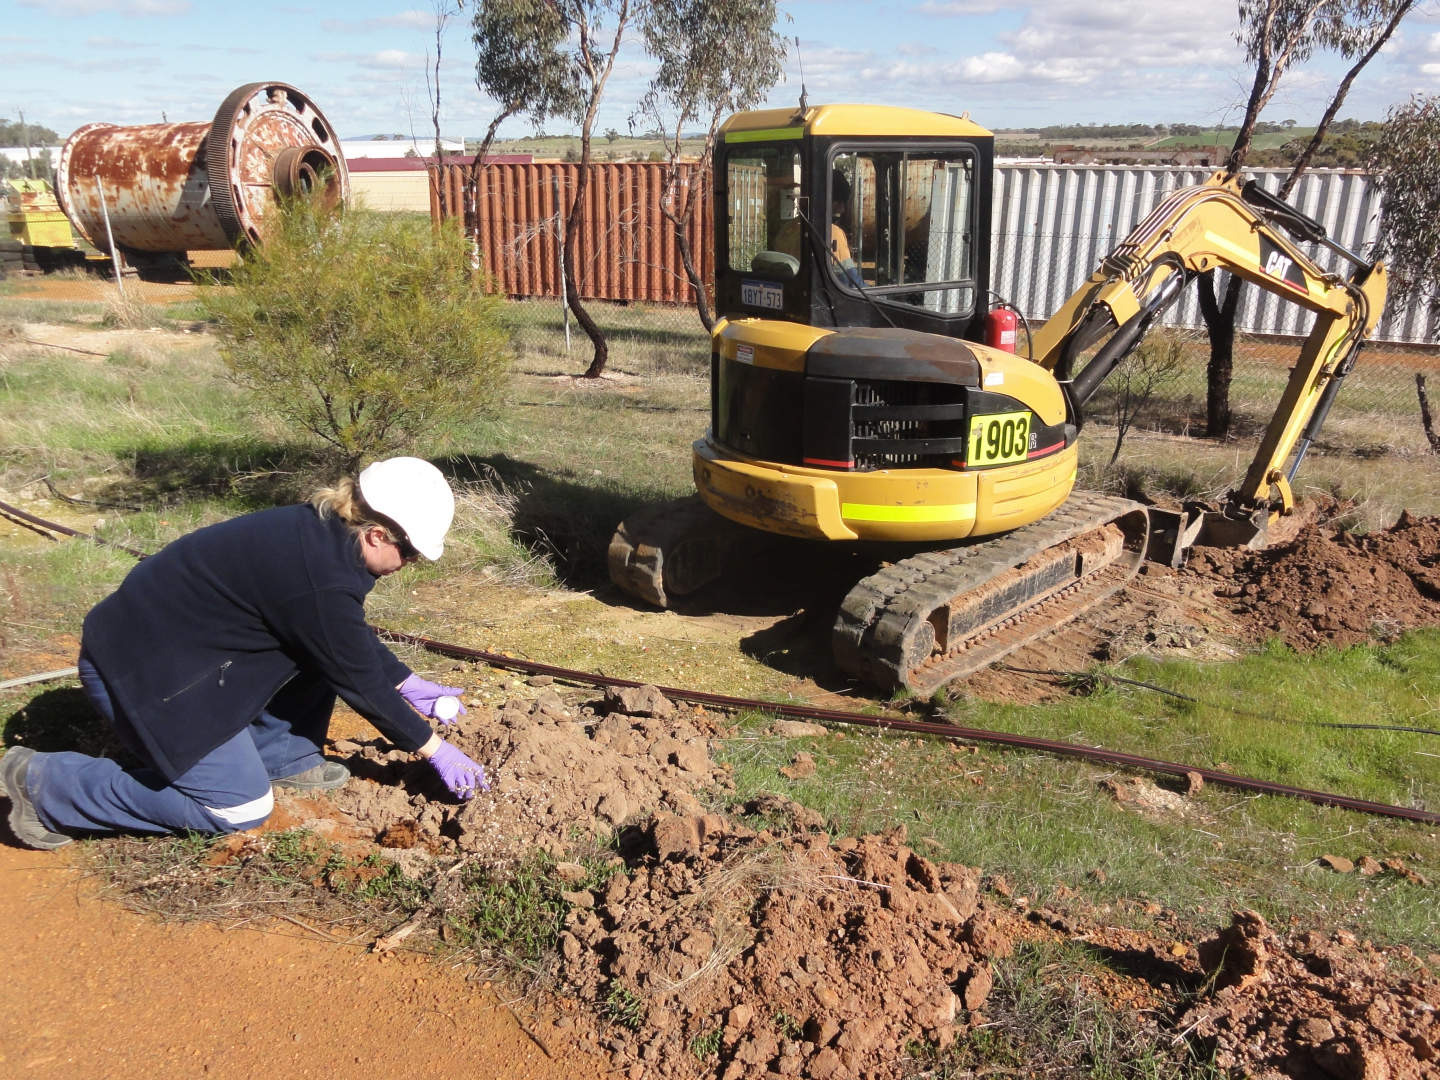 Contaminated Site Investigation & Remediation - Leeming Road, Grass Valley : Image 1